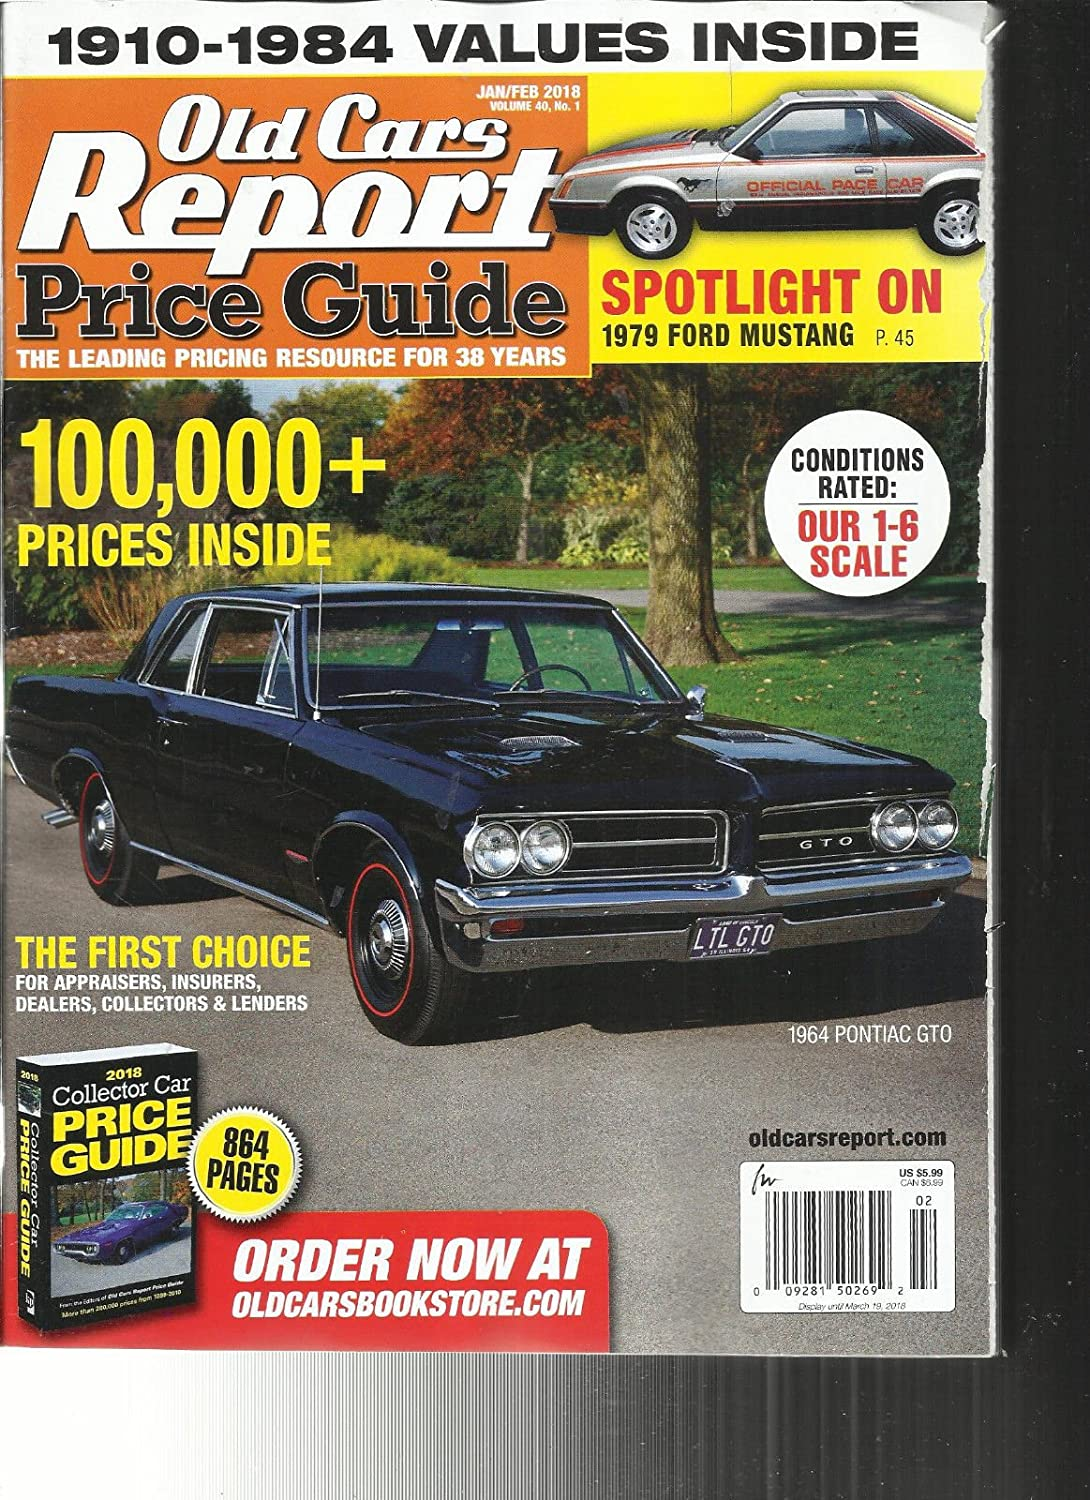 OLD CARS REPORT PRICE GUIDE MAGAZINE, JANUARY / FEBRUARY, 2018 VOL. 40 NO.1 s3457